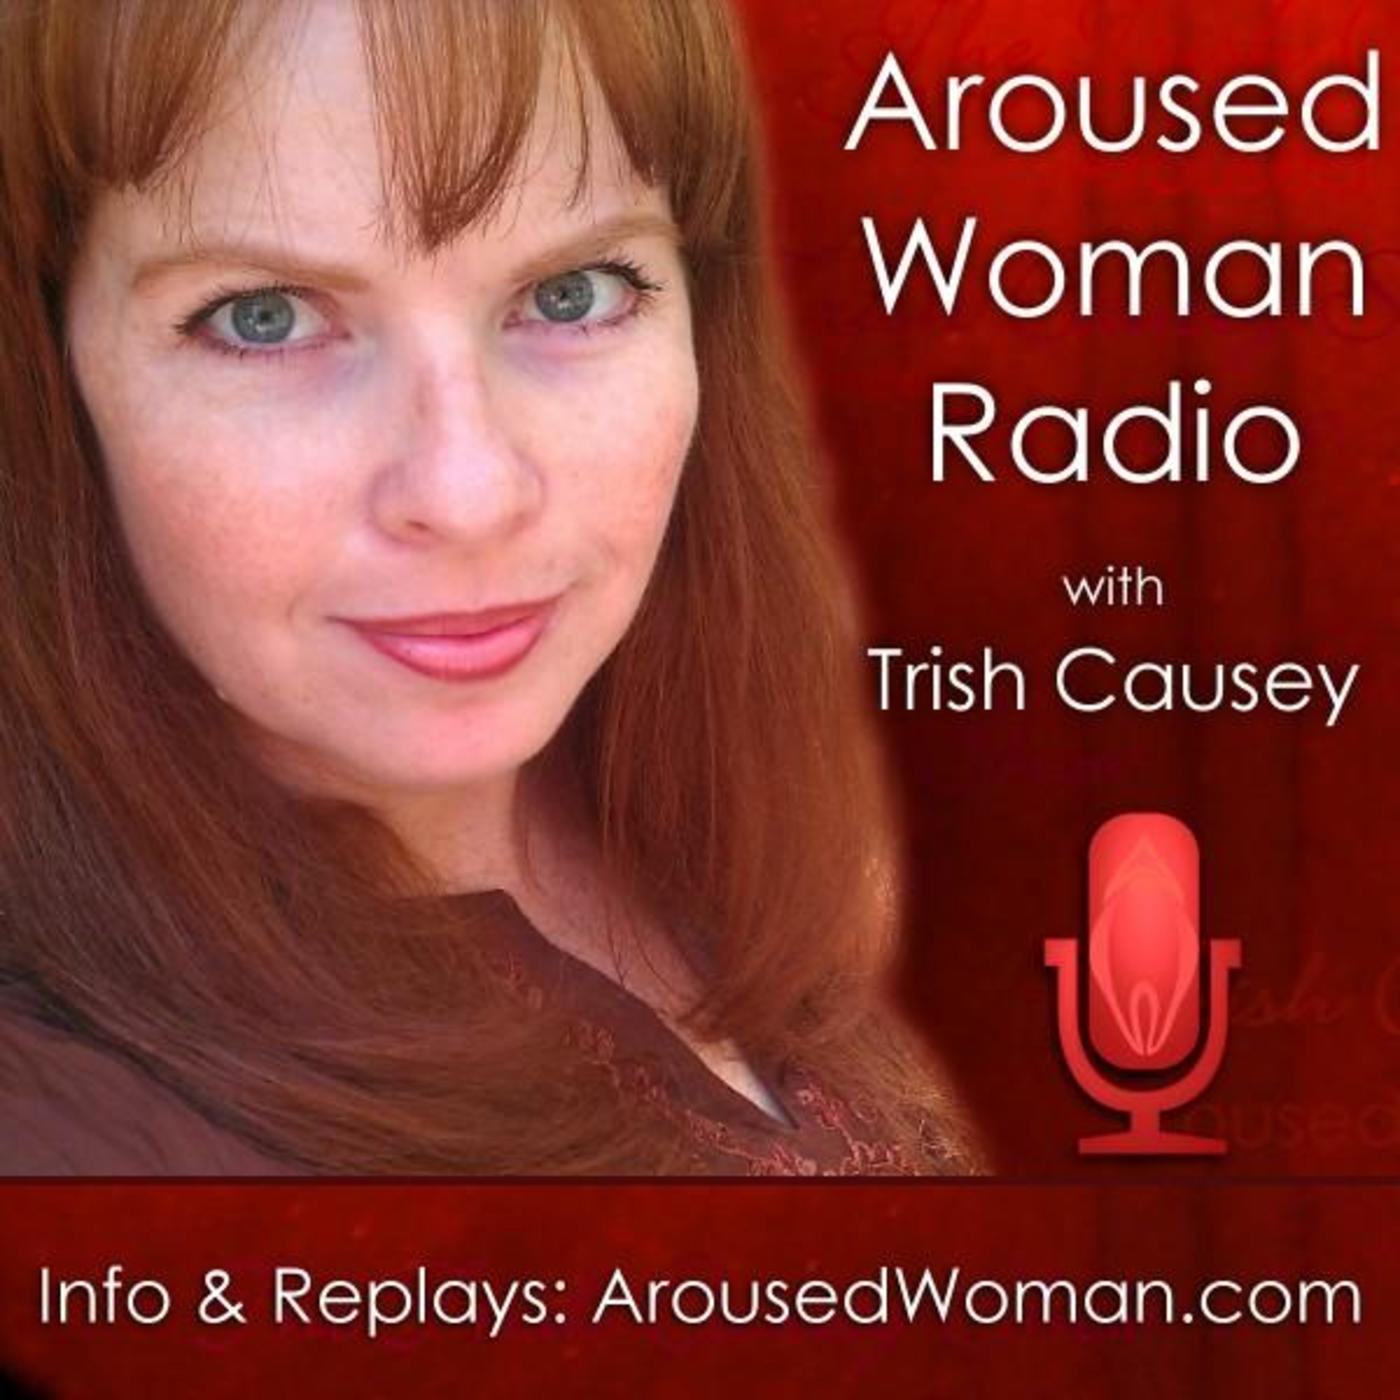 ArousedWoman Radio with Trish Causey